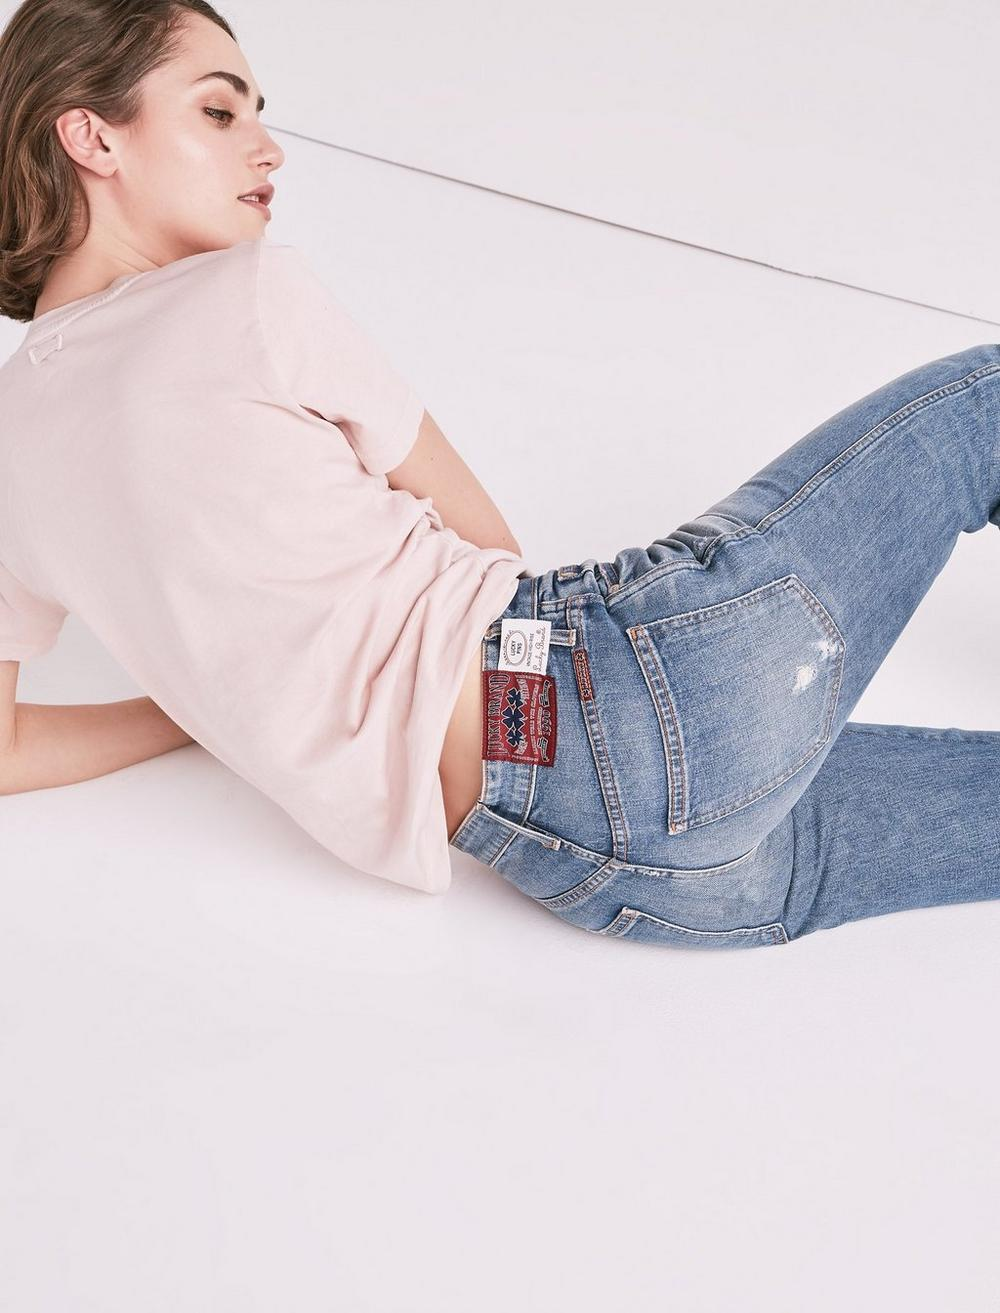 MADE IN L.A. LUCKY PINS HIGH RISE JEAN IN WILKINS, image 4